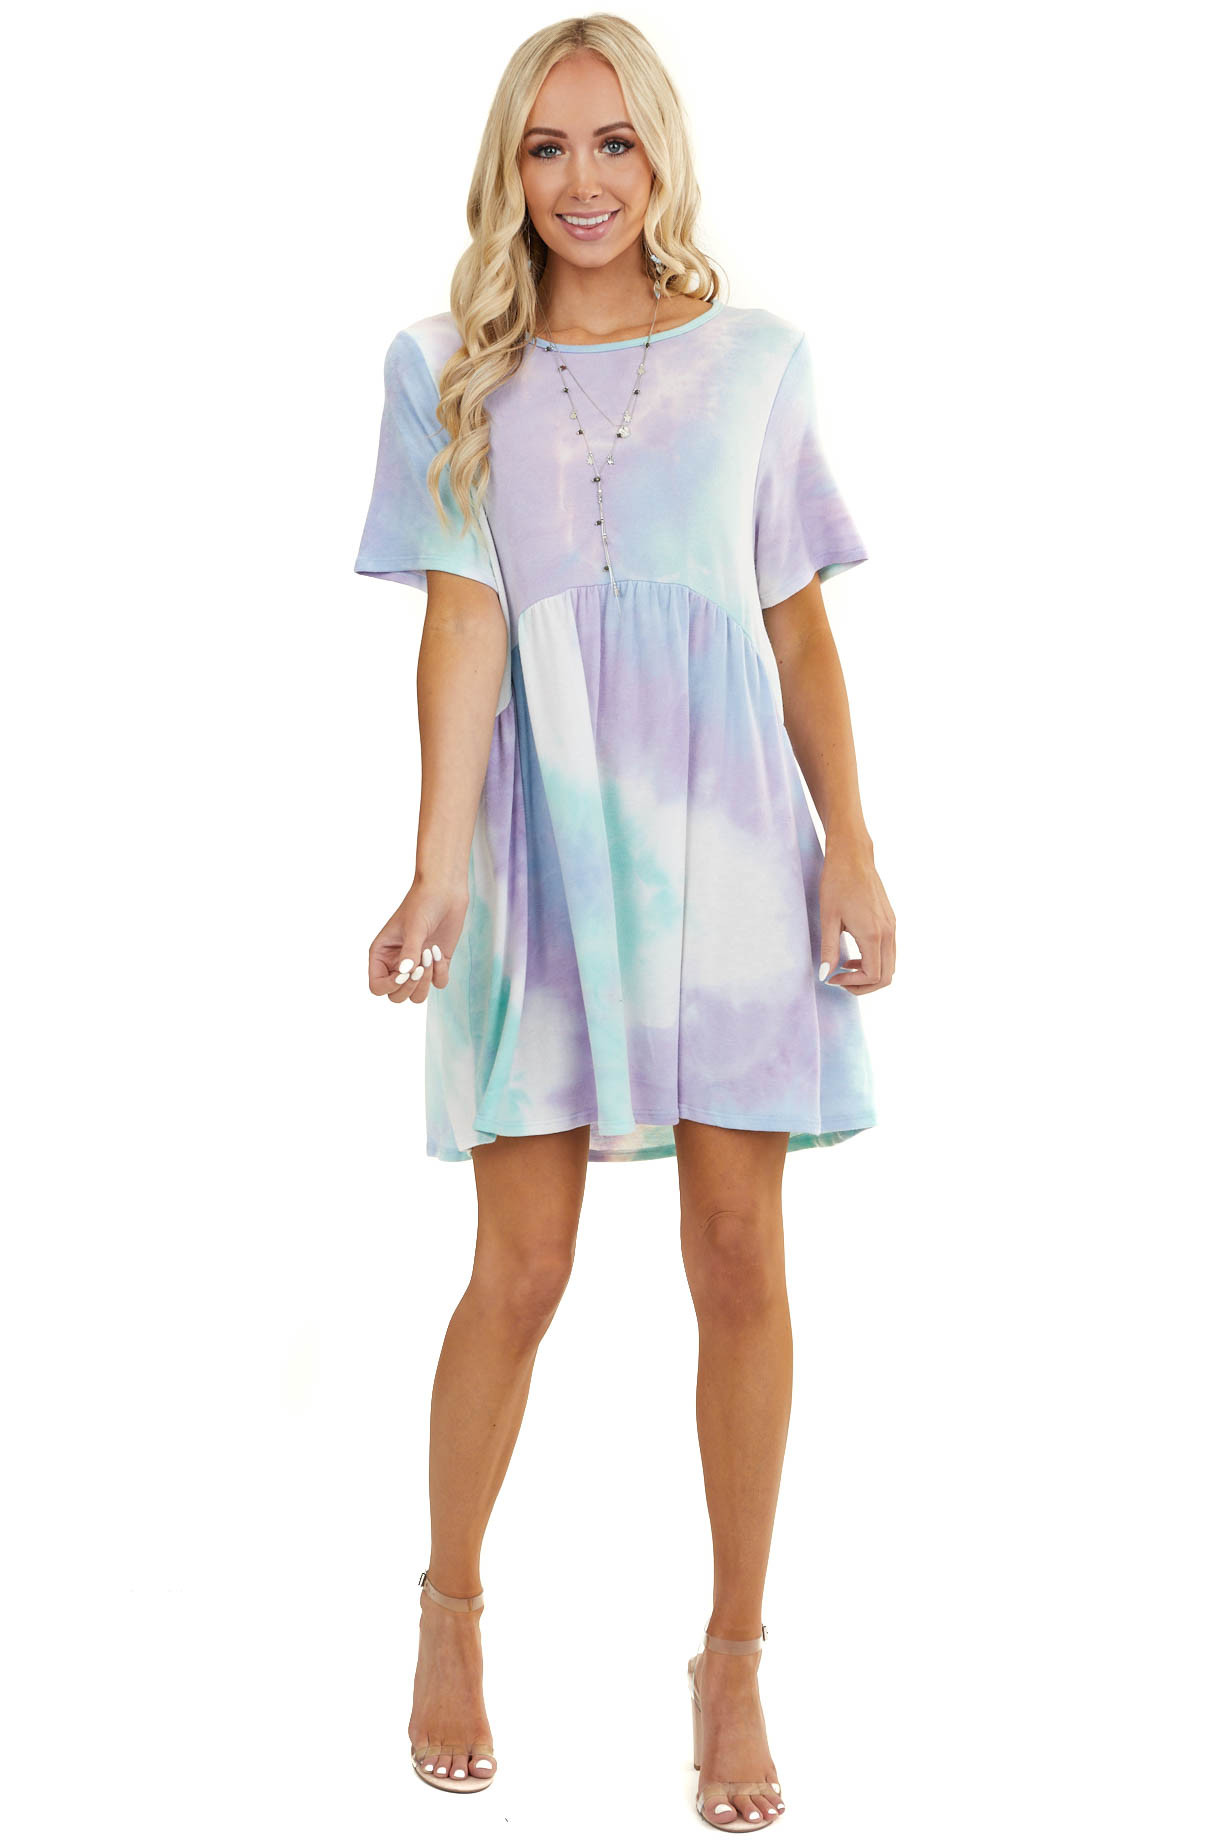 Lavender and Teal Tie Dye Short Sleeve Baby Doll Dress